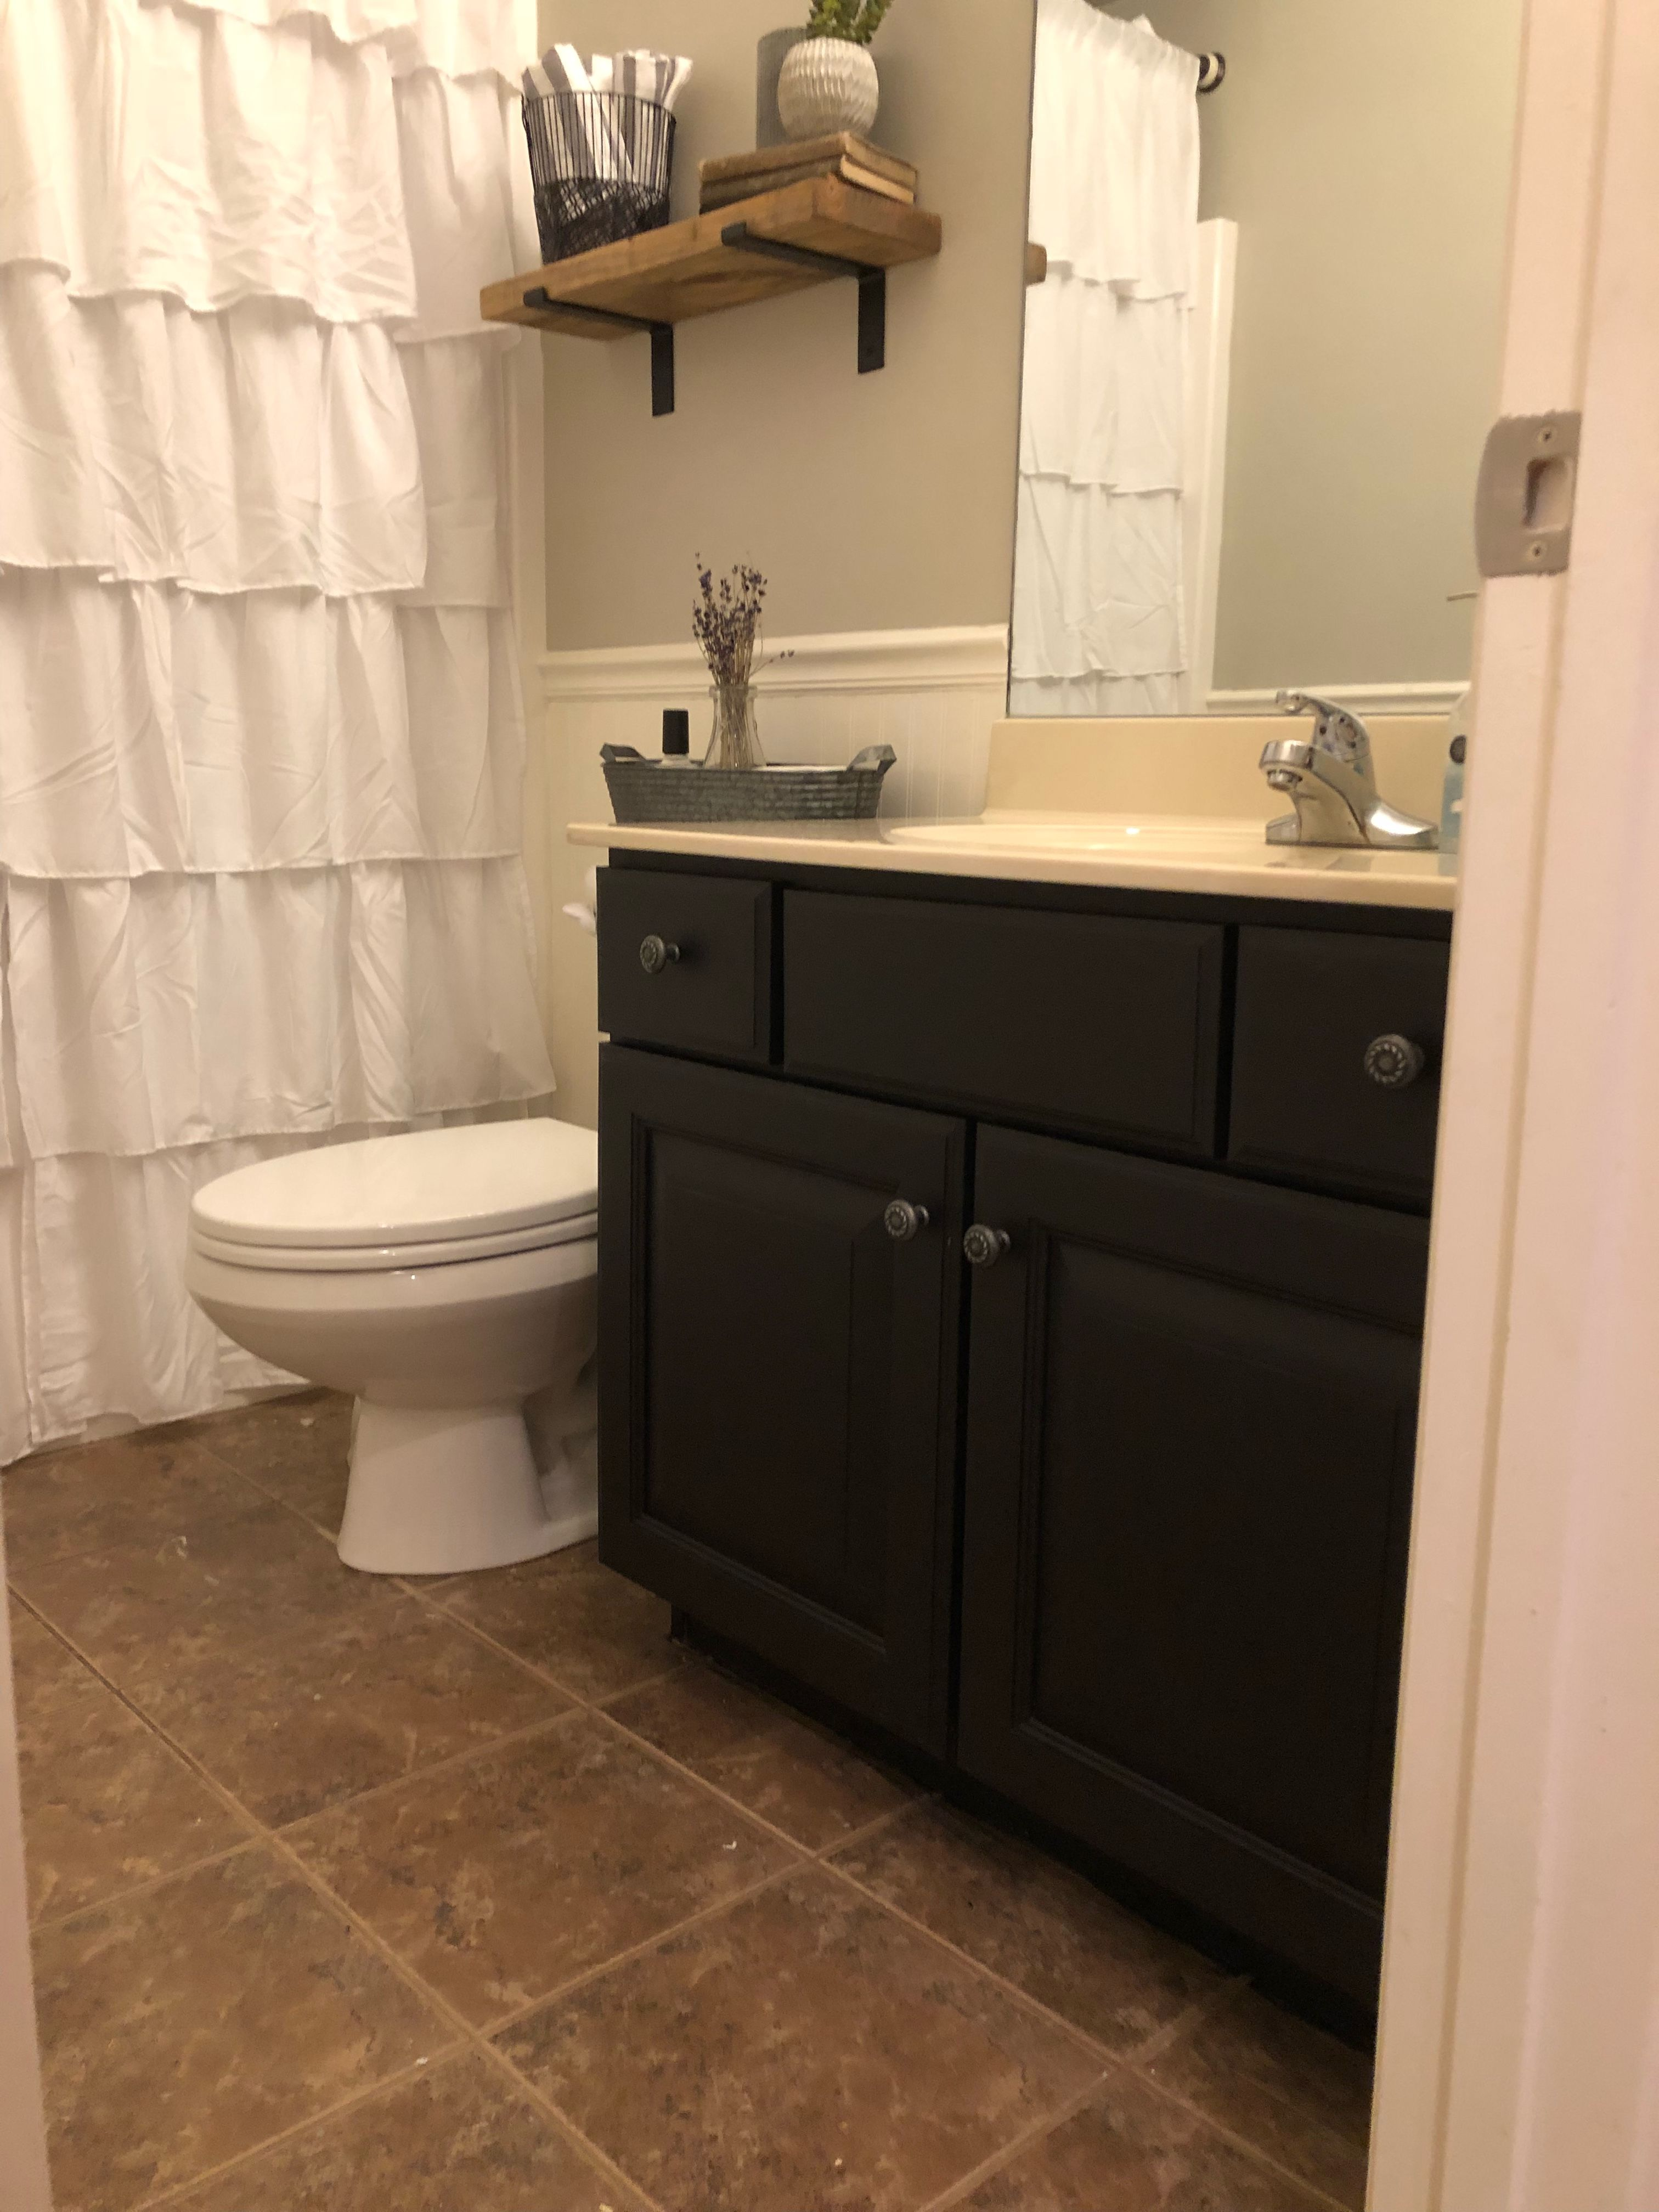 Paint Your Bathroom Cabinet For A Cheap And Easy Diy 100 Room Challenge Week 3 Bathroom Cabinets Designs Bathroom Cabinets Diy Painting Bathroom Cabinets [ 4032 x 3024 Pixel ]